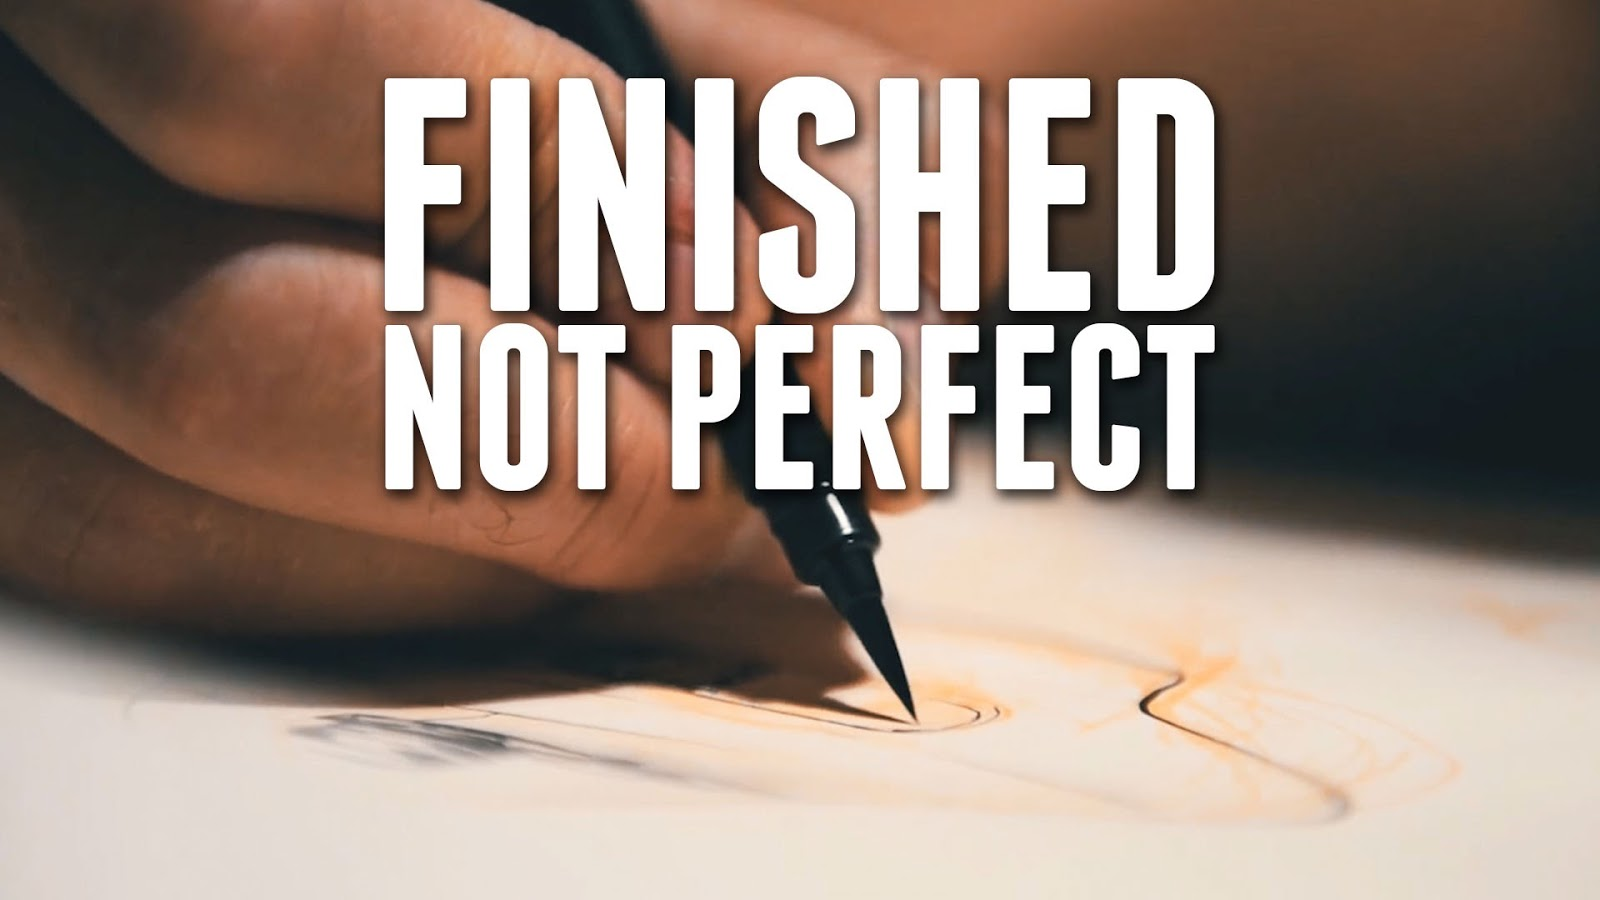 Not Perfect Sayings and Quotes ~ Best Quotes and Sayings